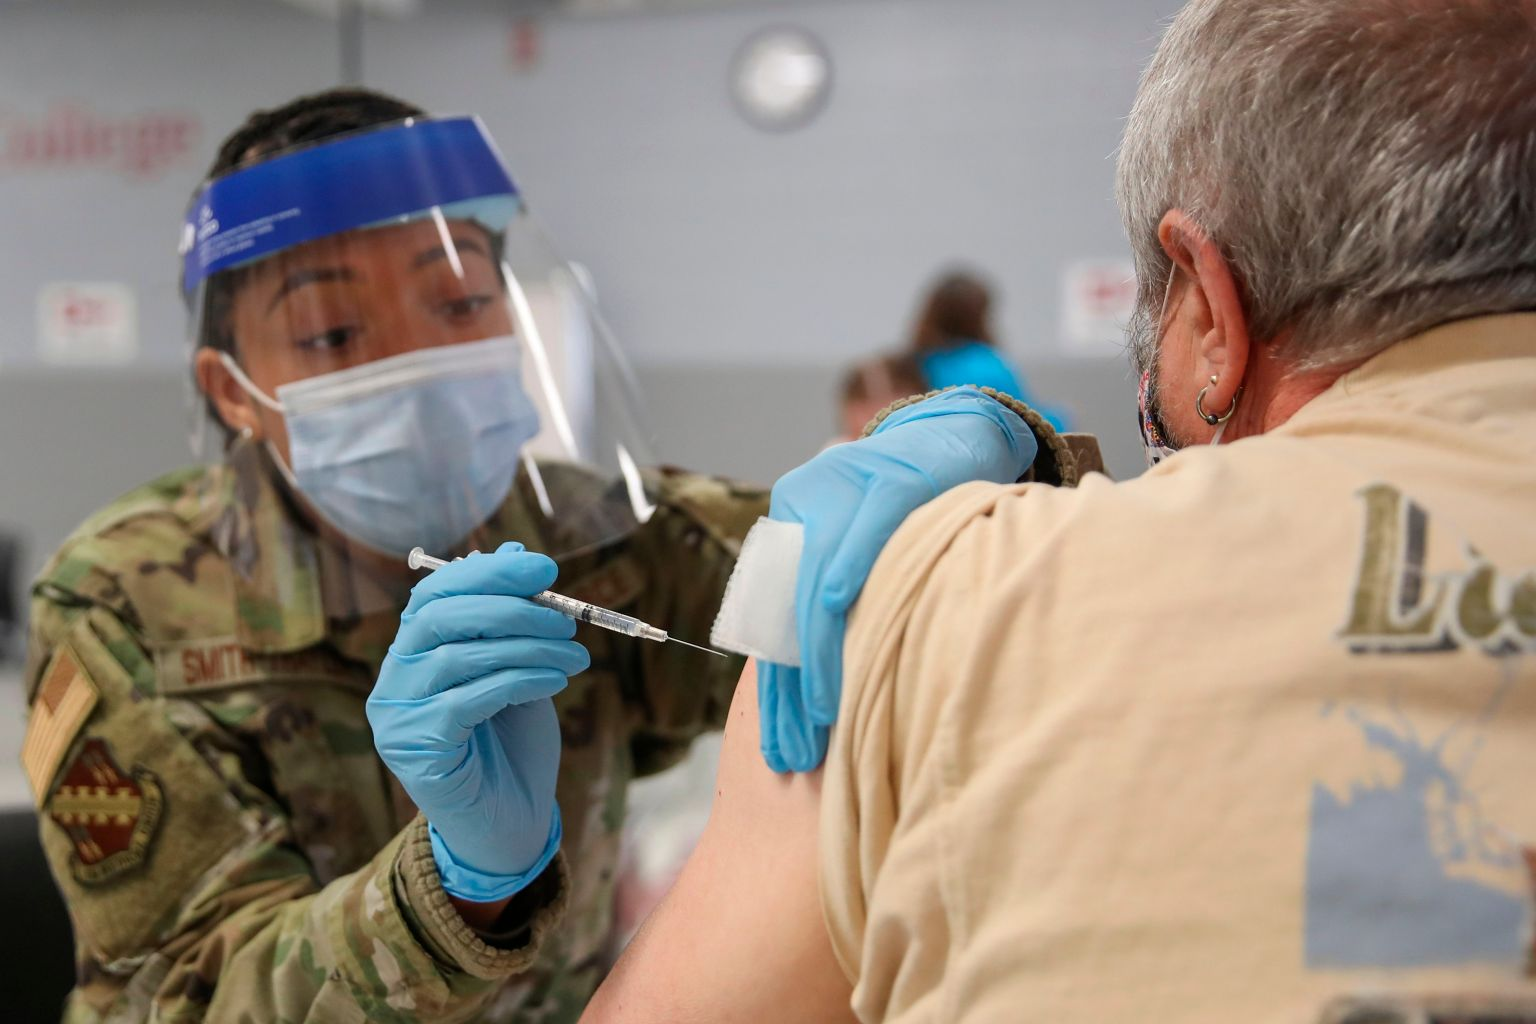 Vaccine Hesitancy; Health Officials Stress Importance Of Options